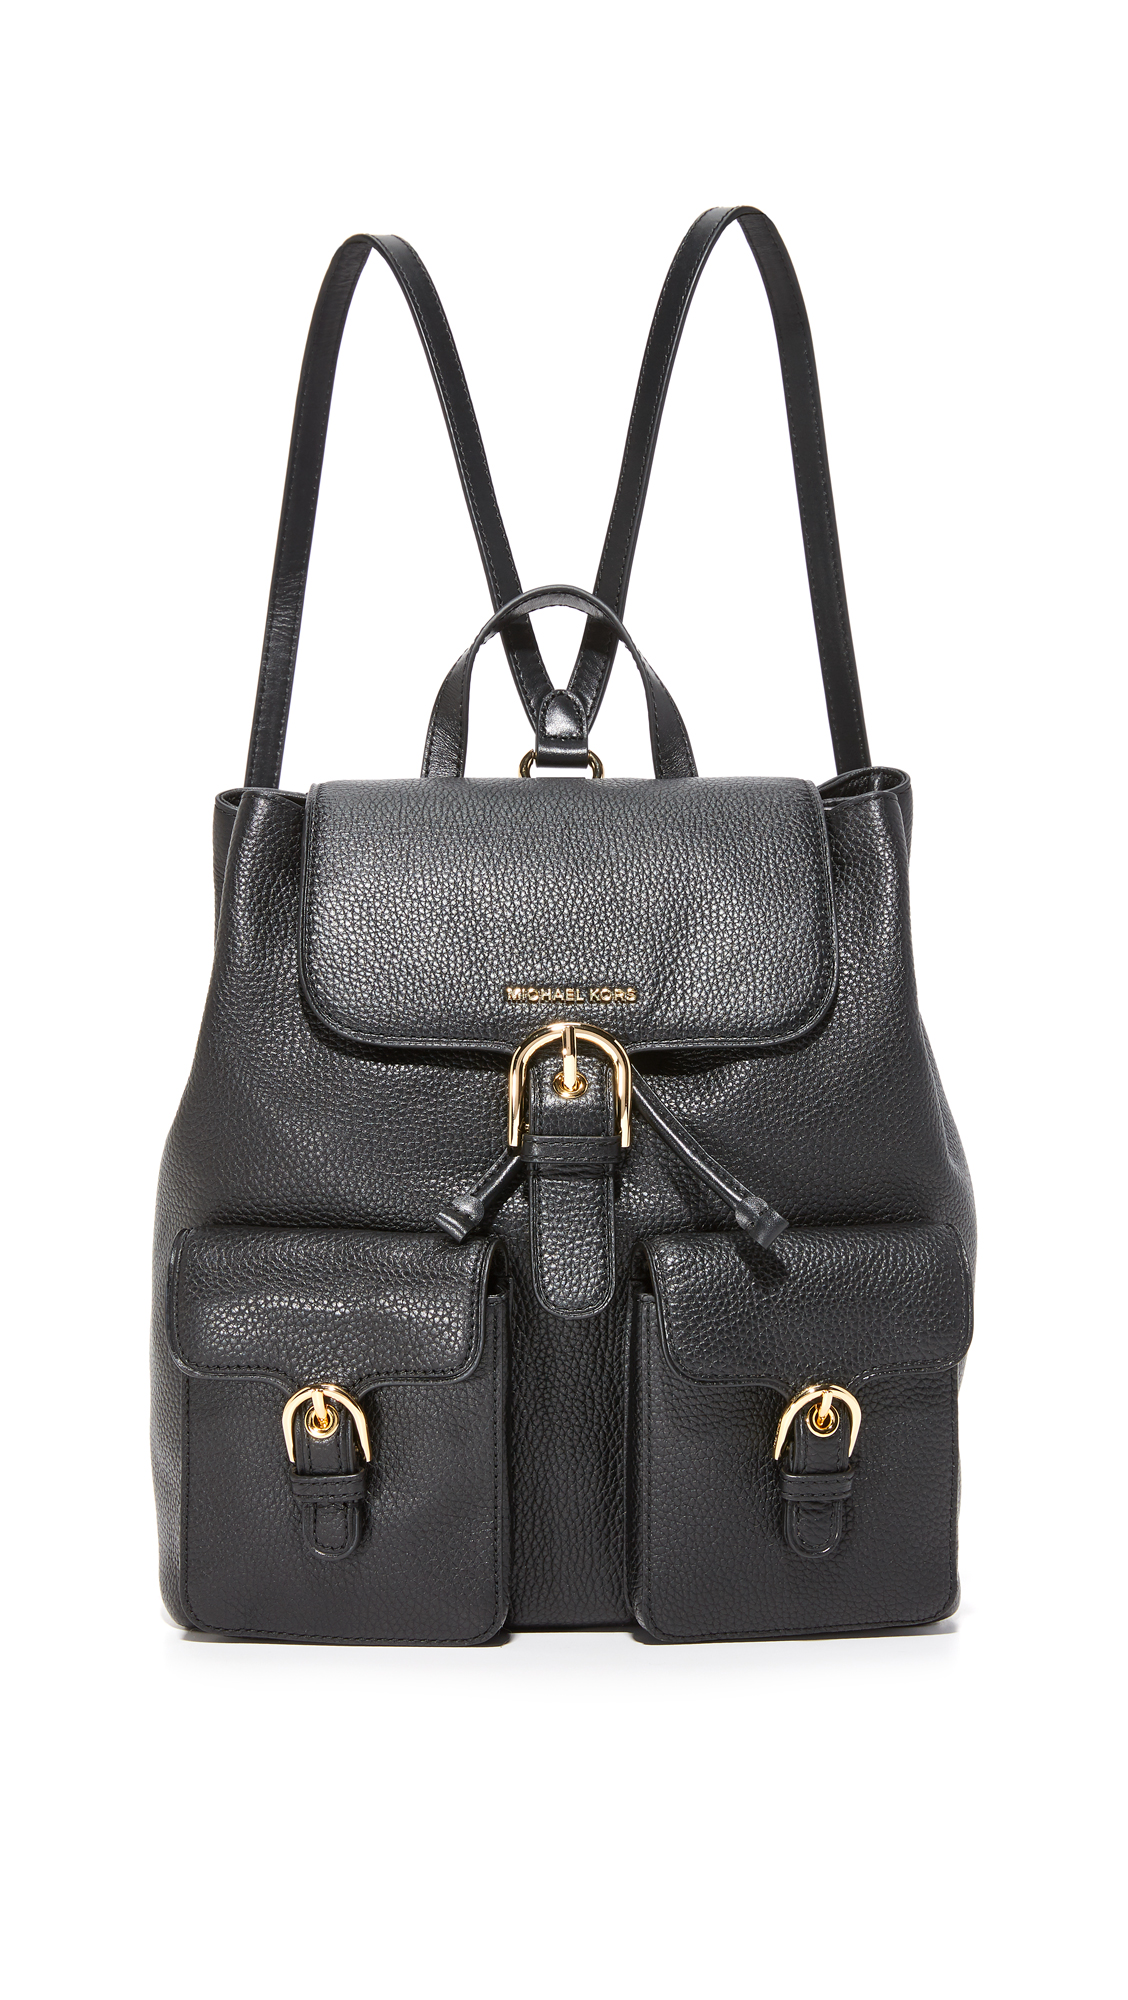 Two pouch pockets with decorative buckles lend a vintage inspired touch to this leather MICHAEL Michael Kors backpack. Slim back pocket. A hidden push lock secures the top flap. Lined, 4 pocket interior. Locker loop and adjustable